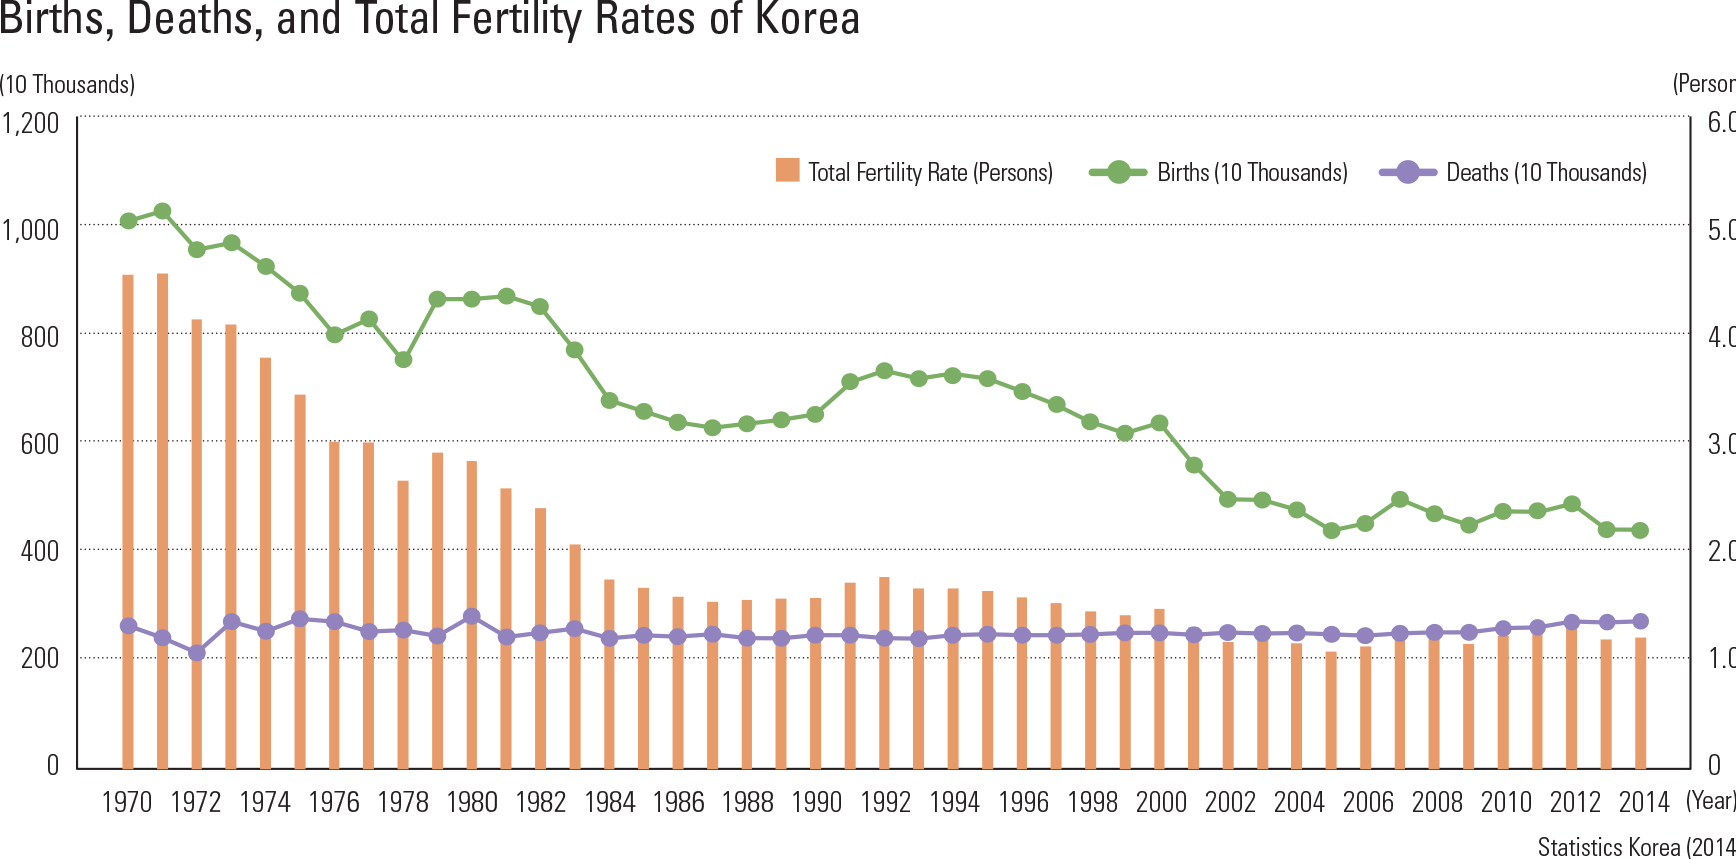 "Births, Deaths, and Total Fertility Rates of Korea<p class=""oz_zoom"" zimg=""http://imagedata.cafe24.com/us_3/us3_116-3_2.jpg""><span style=""font-family:Nanum Myeongjo;""><span style=""font-size:18px;""><span class=""label label-danger"">UPDATE DATA</span></span></p>"